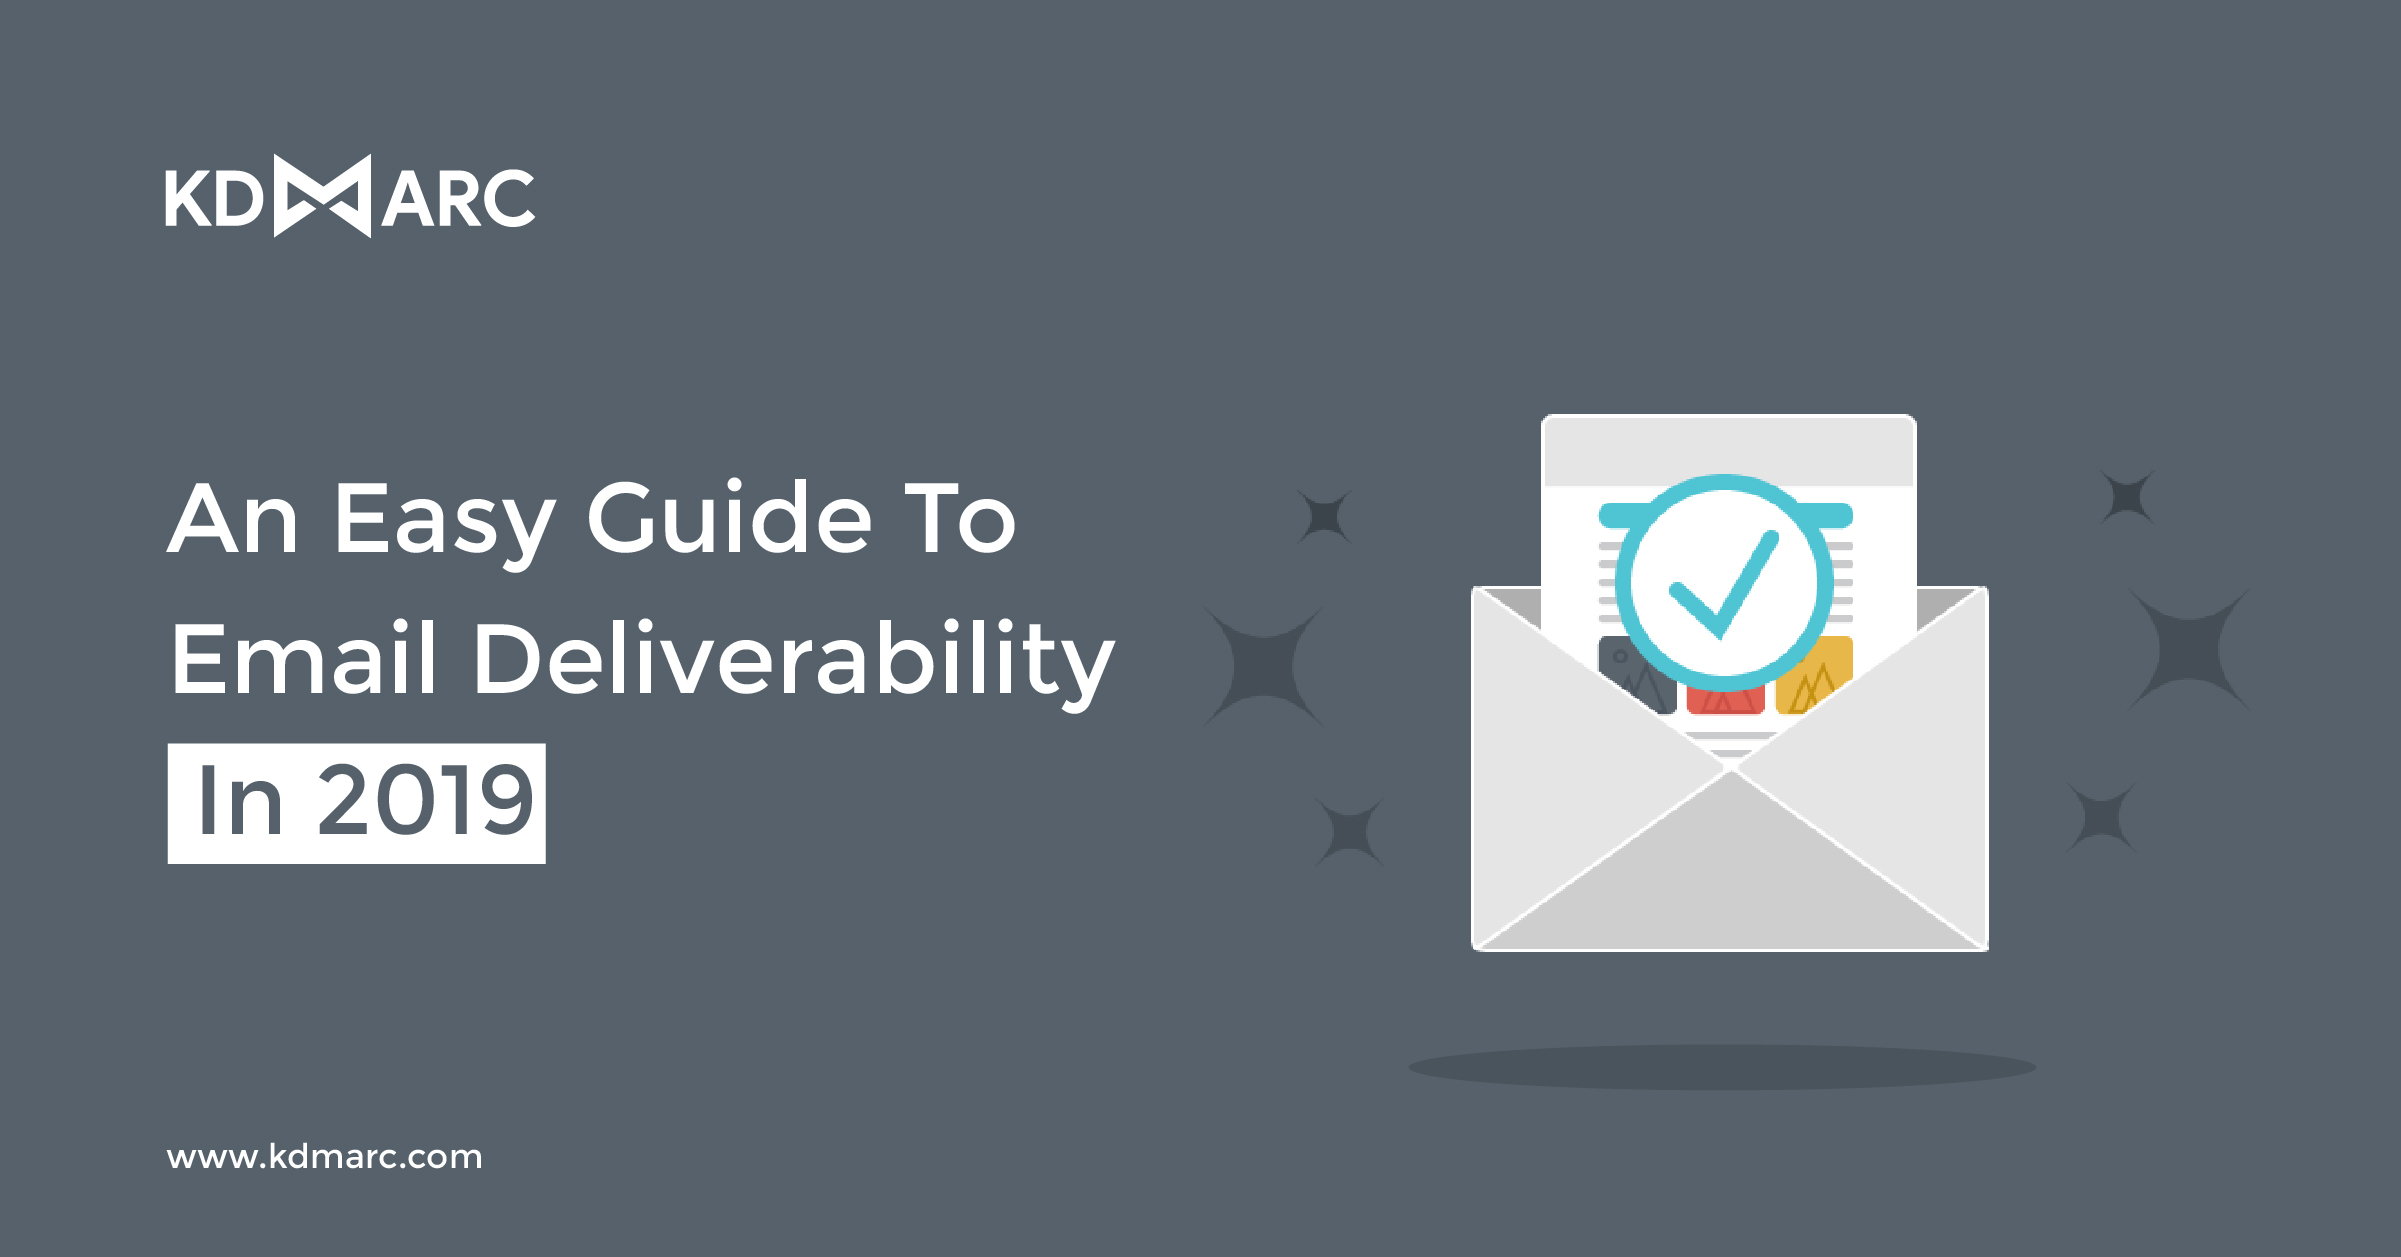 An Easy Guide to Email Deliverability in 2019